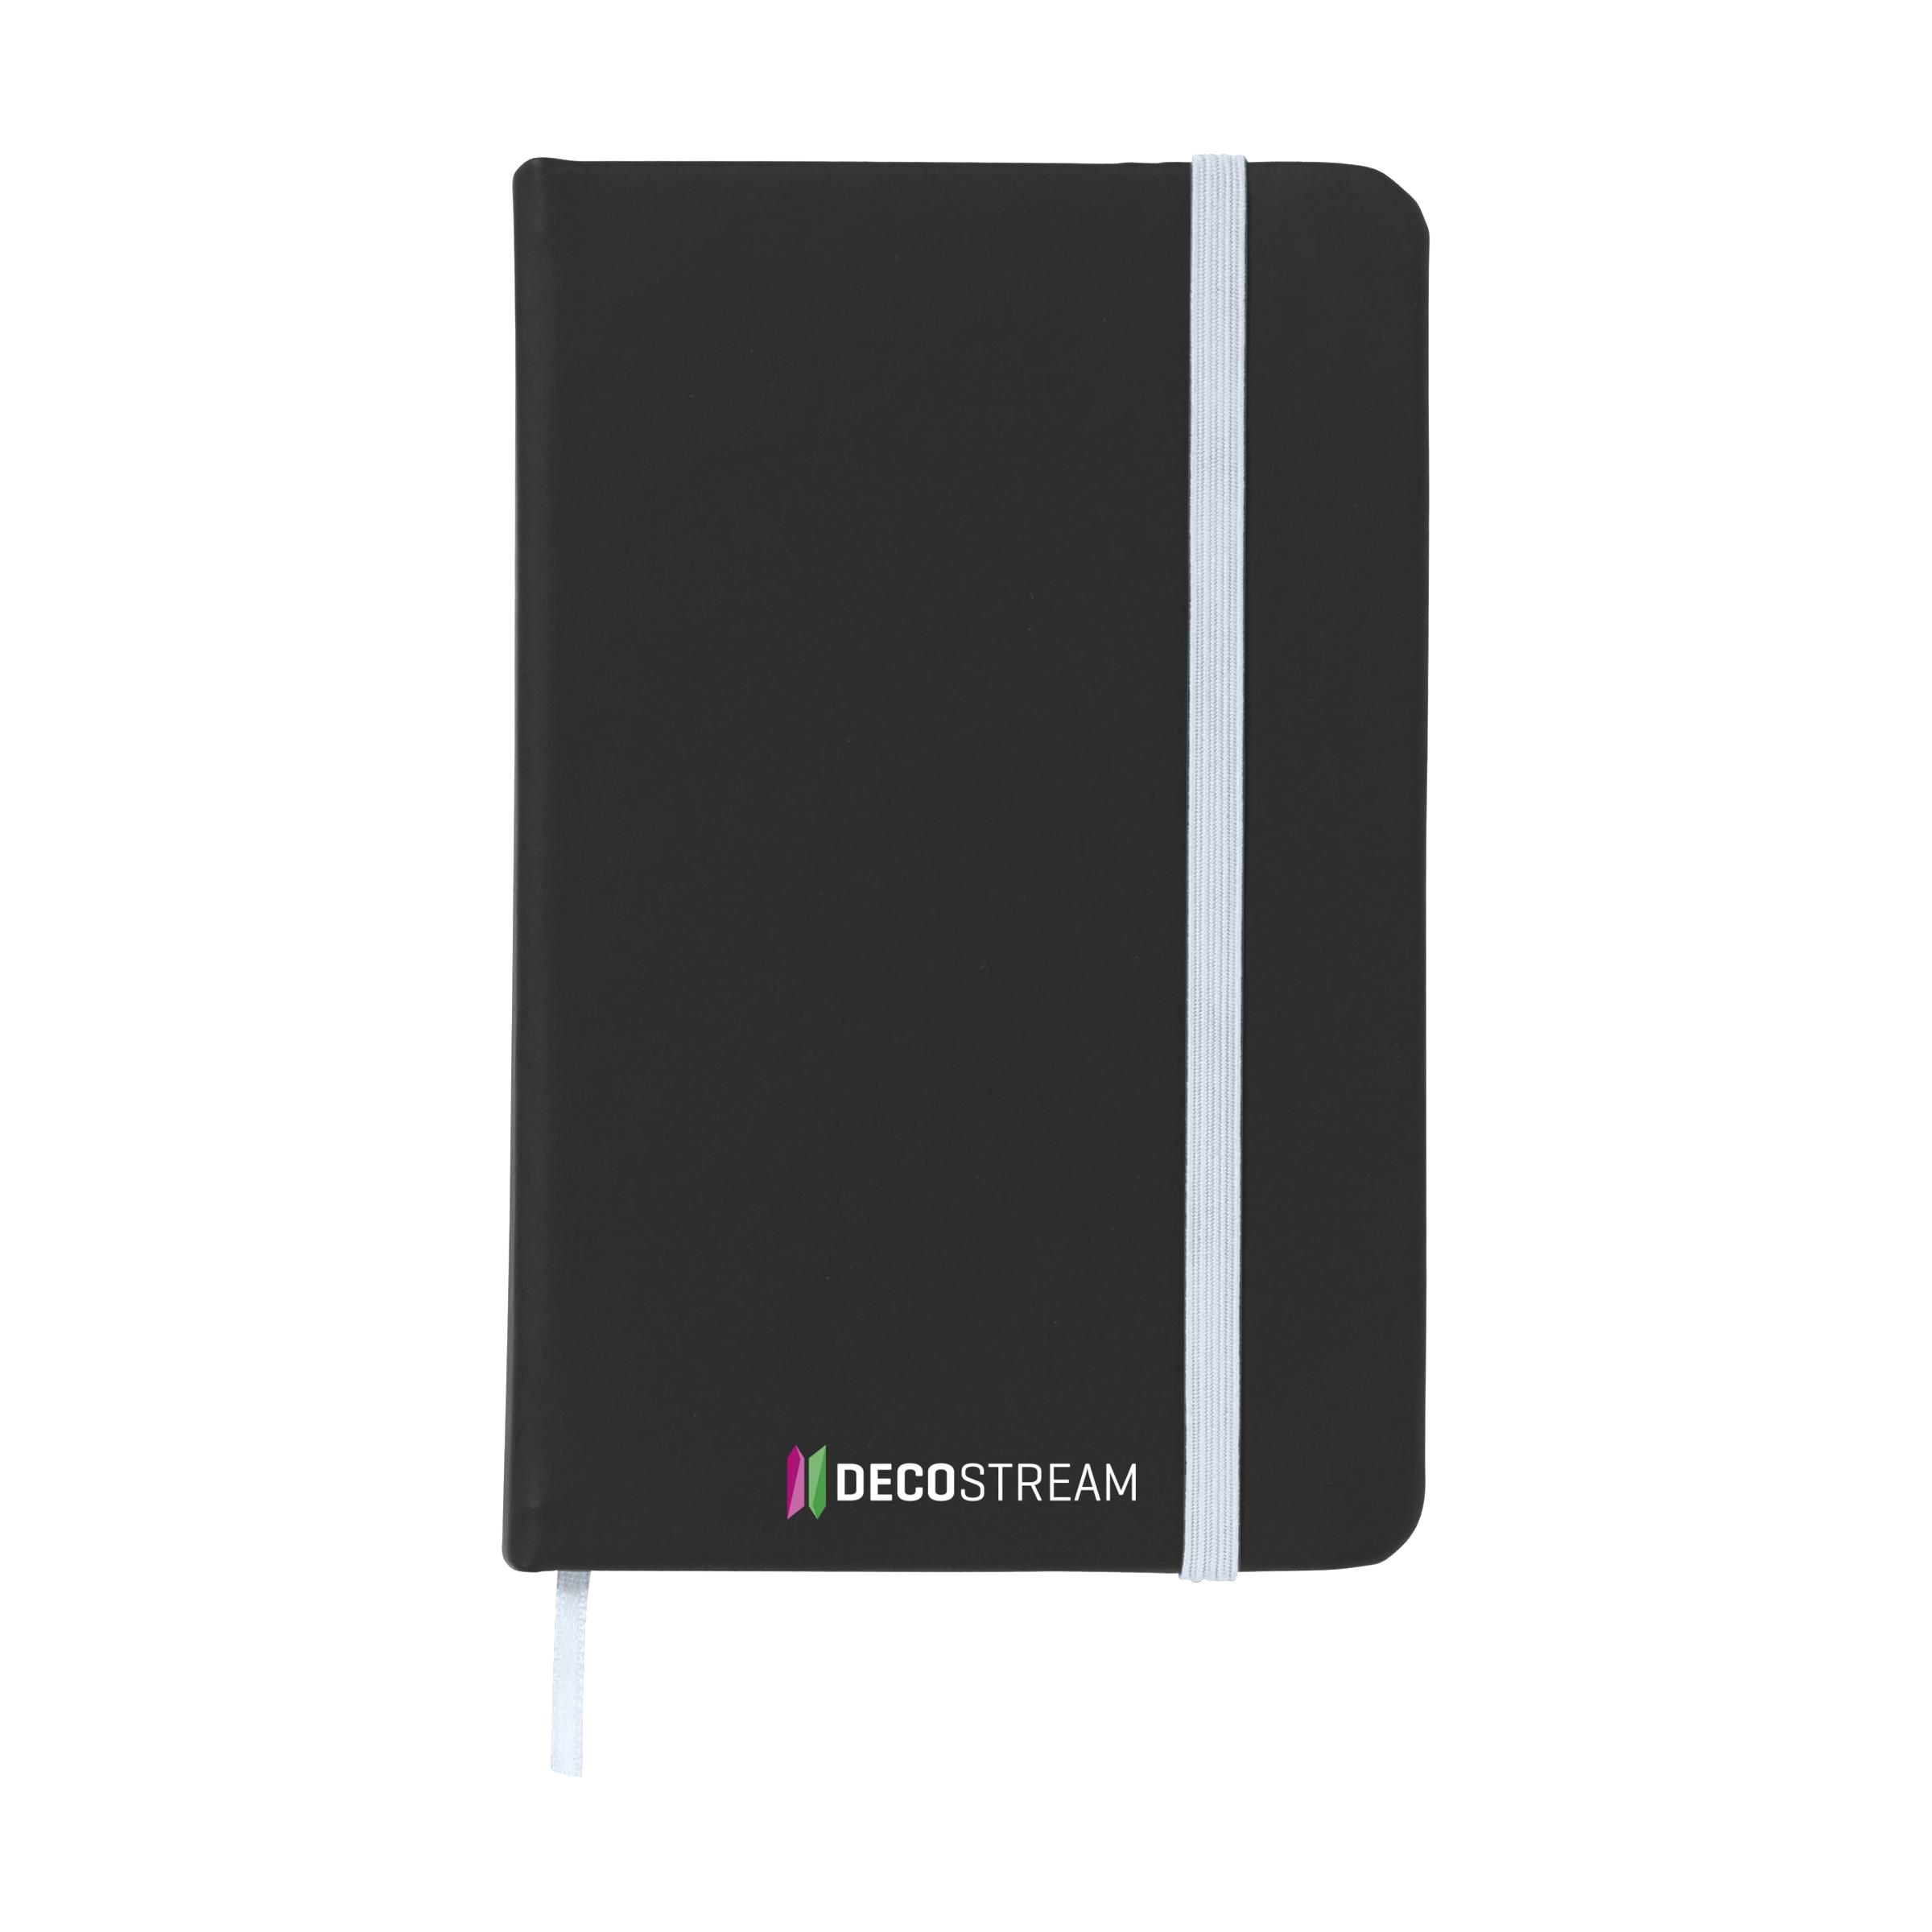 Print custom notebooks in black by imprinting your logo, design and message. Available in a wide range of colors and materials